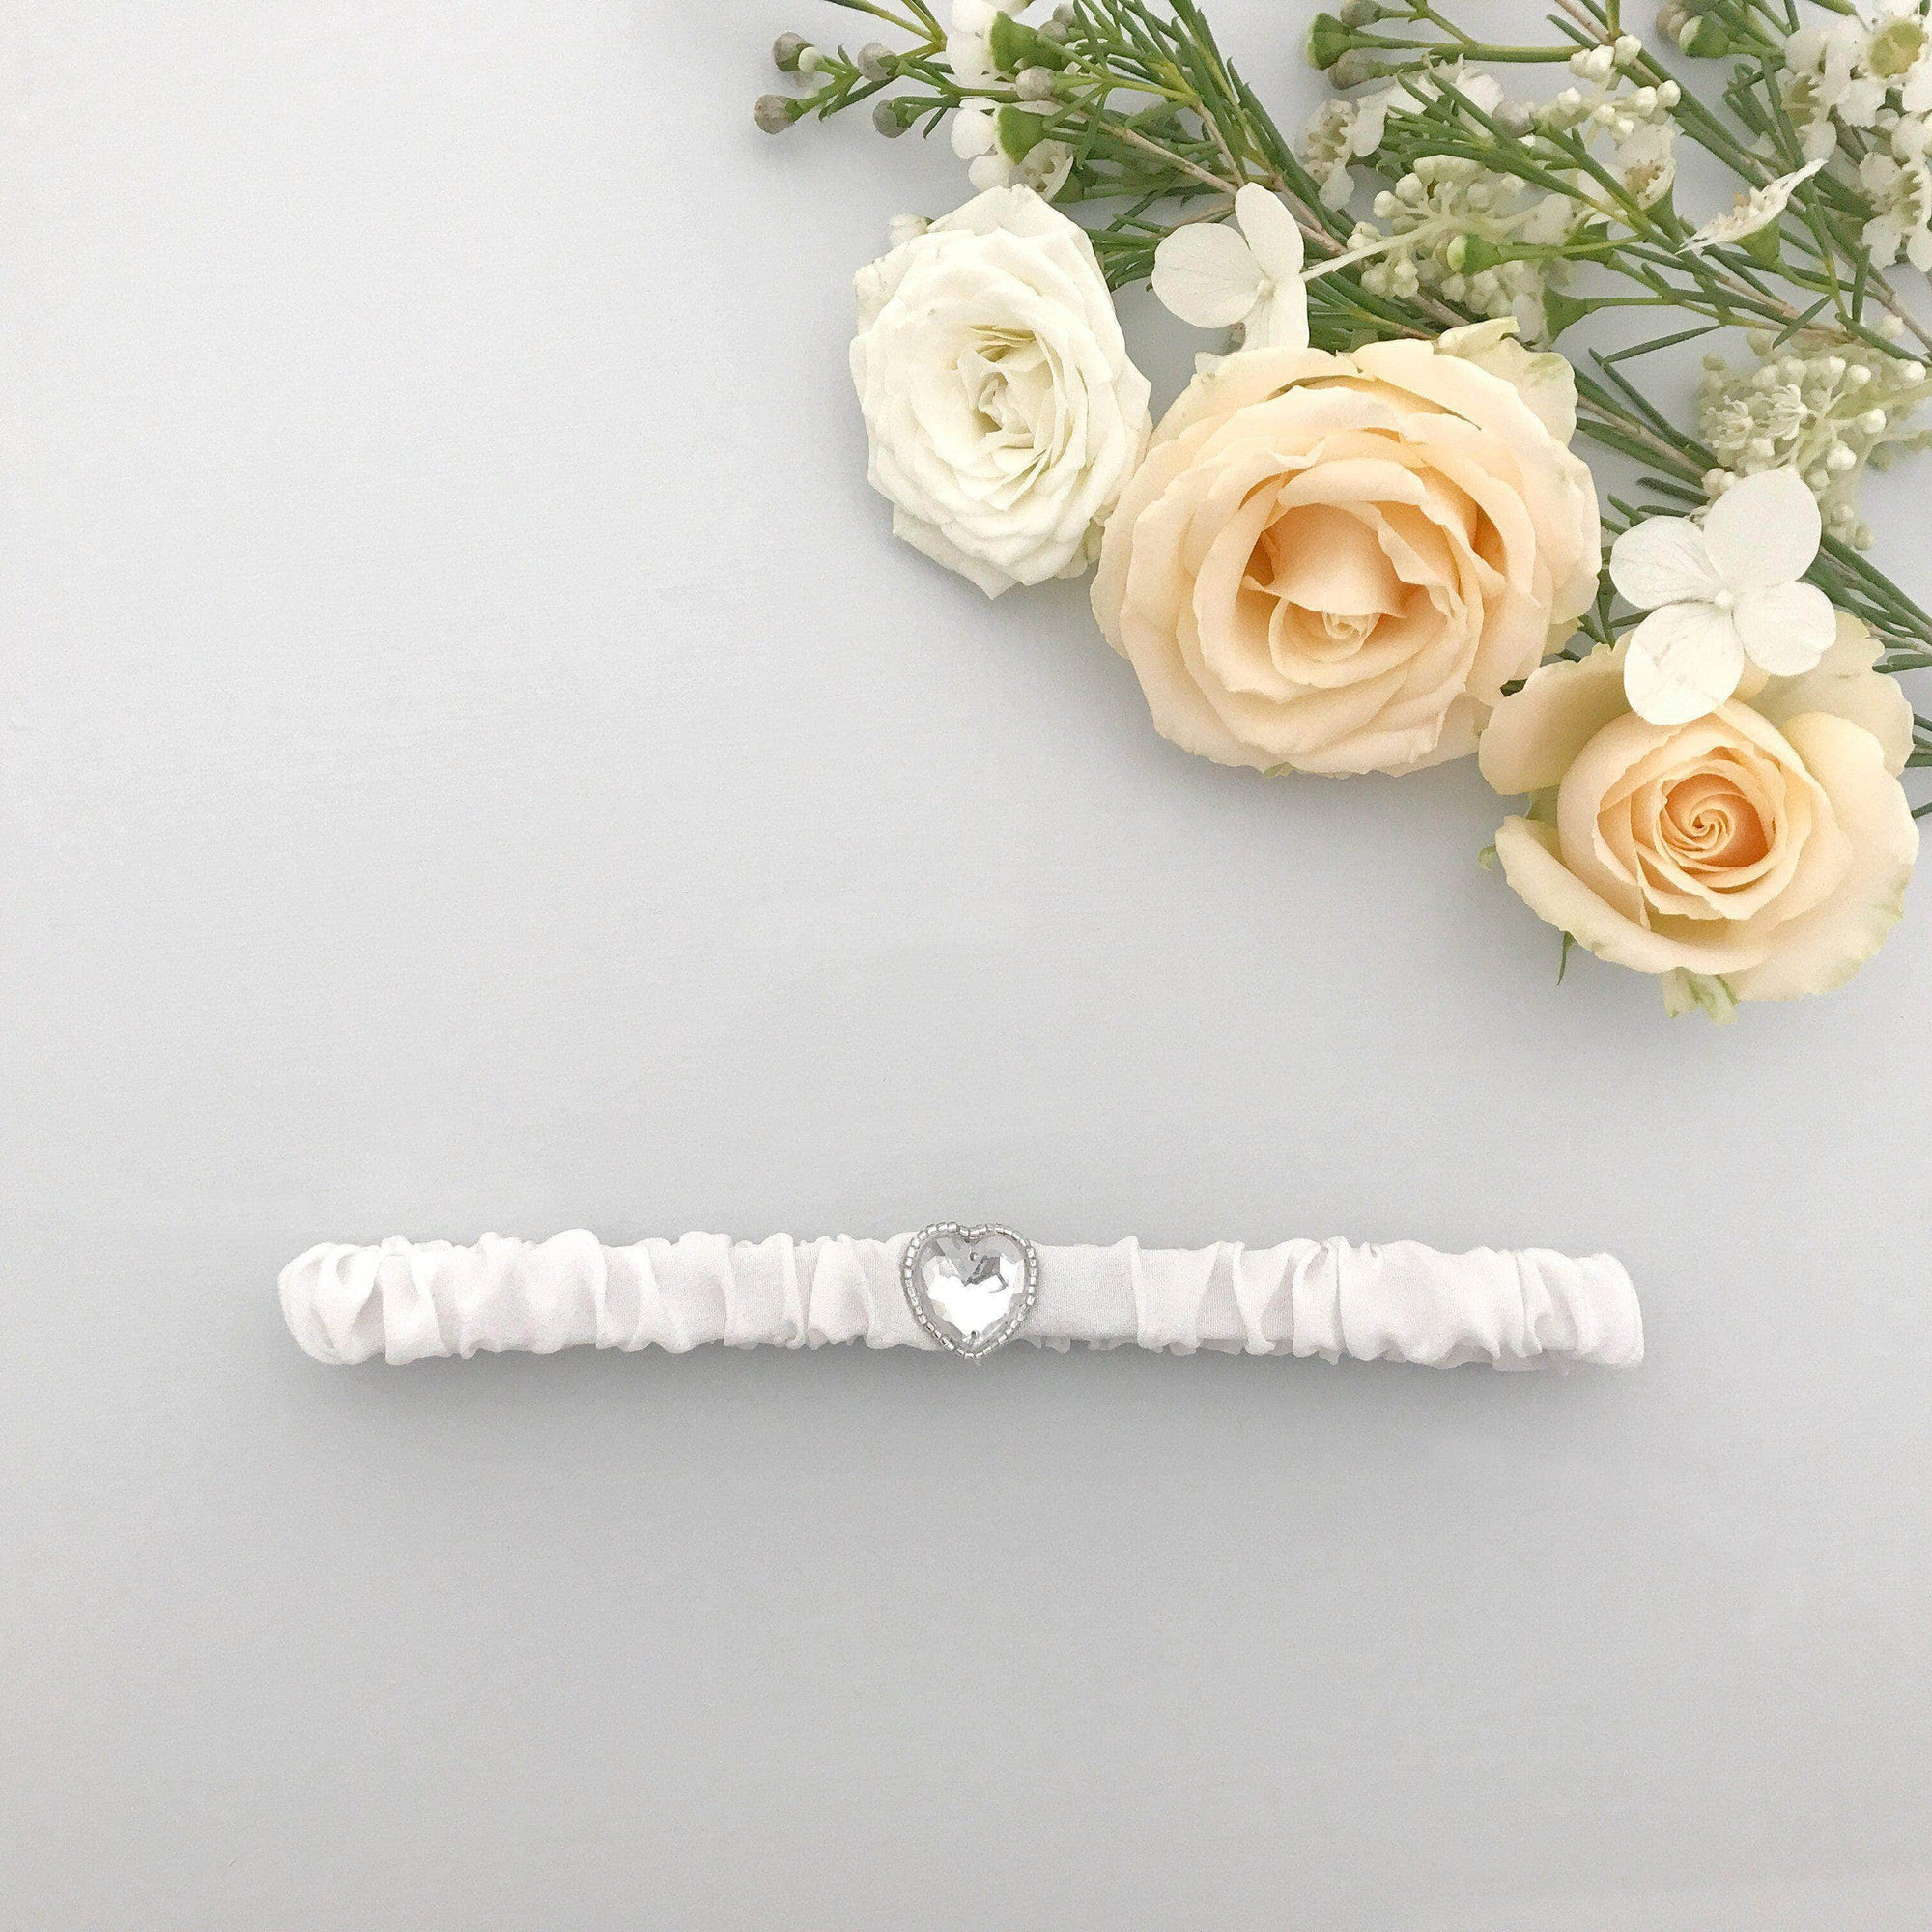 Wedding Garter Ivory / Extra small 35-40cm (13.5-16 inch) Heart wedding garter (various colours) - 'Hera'